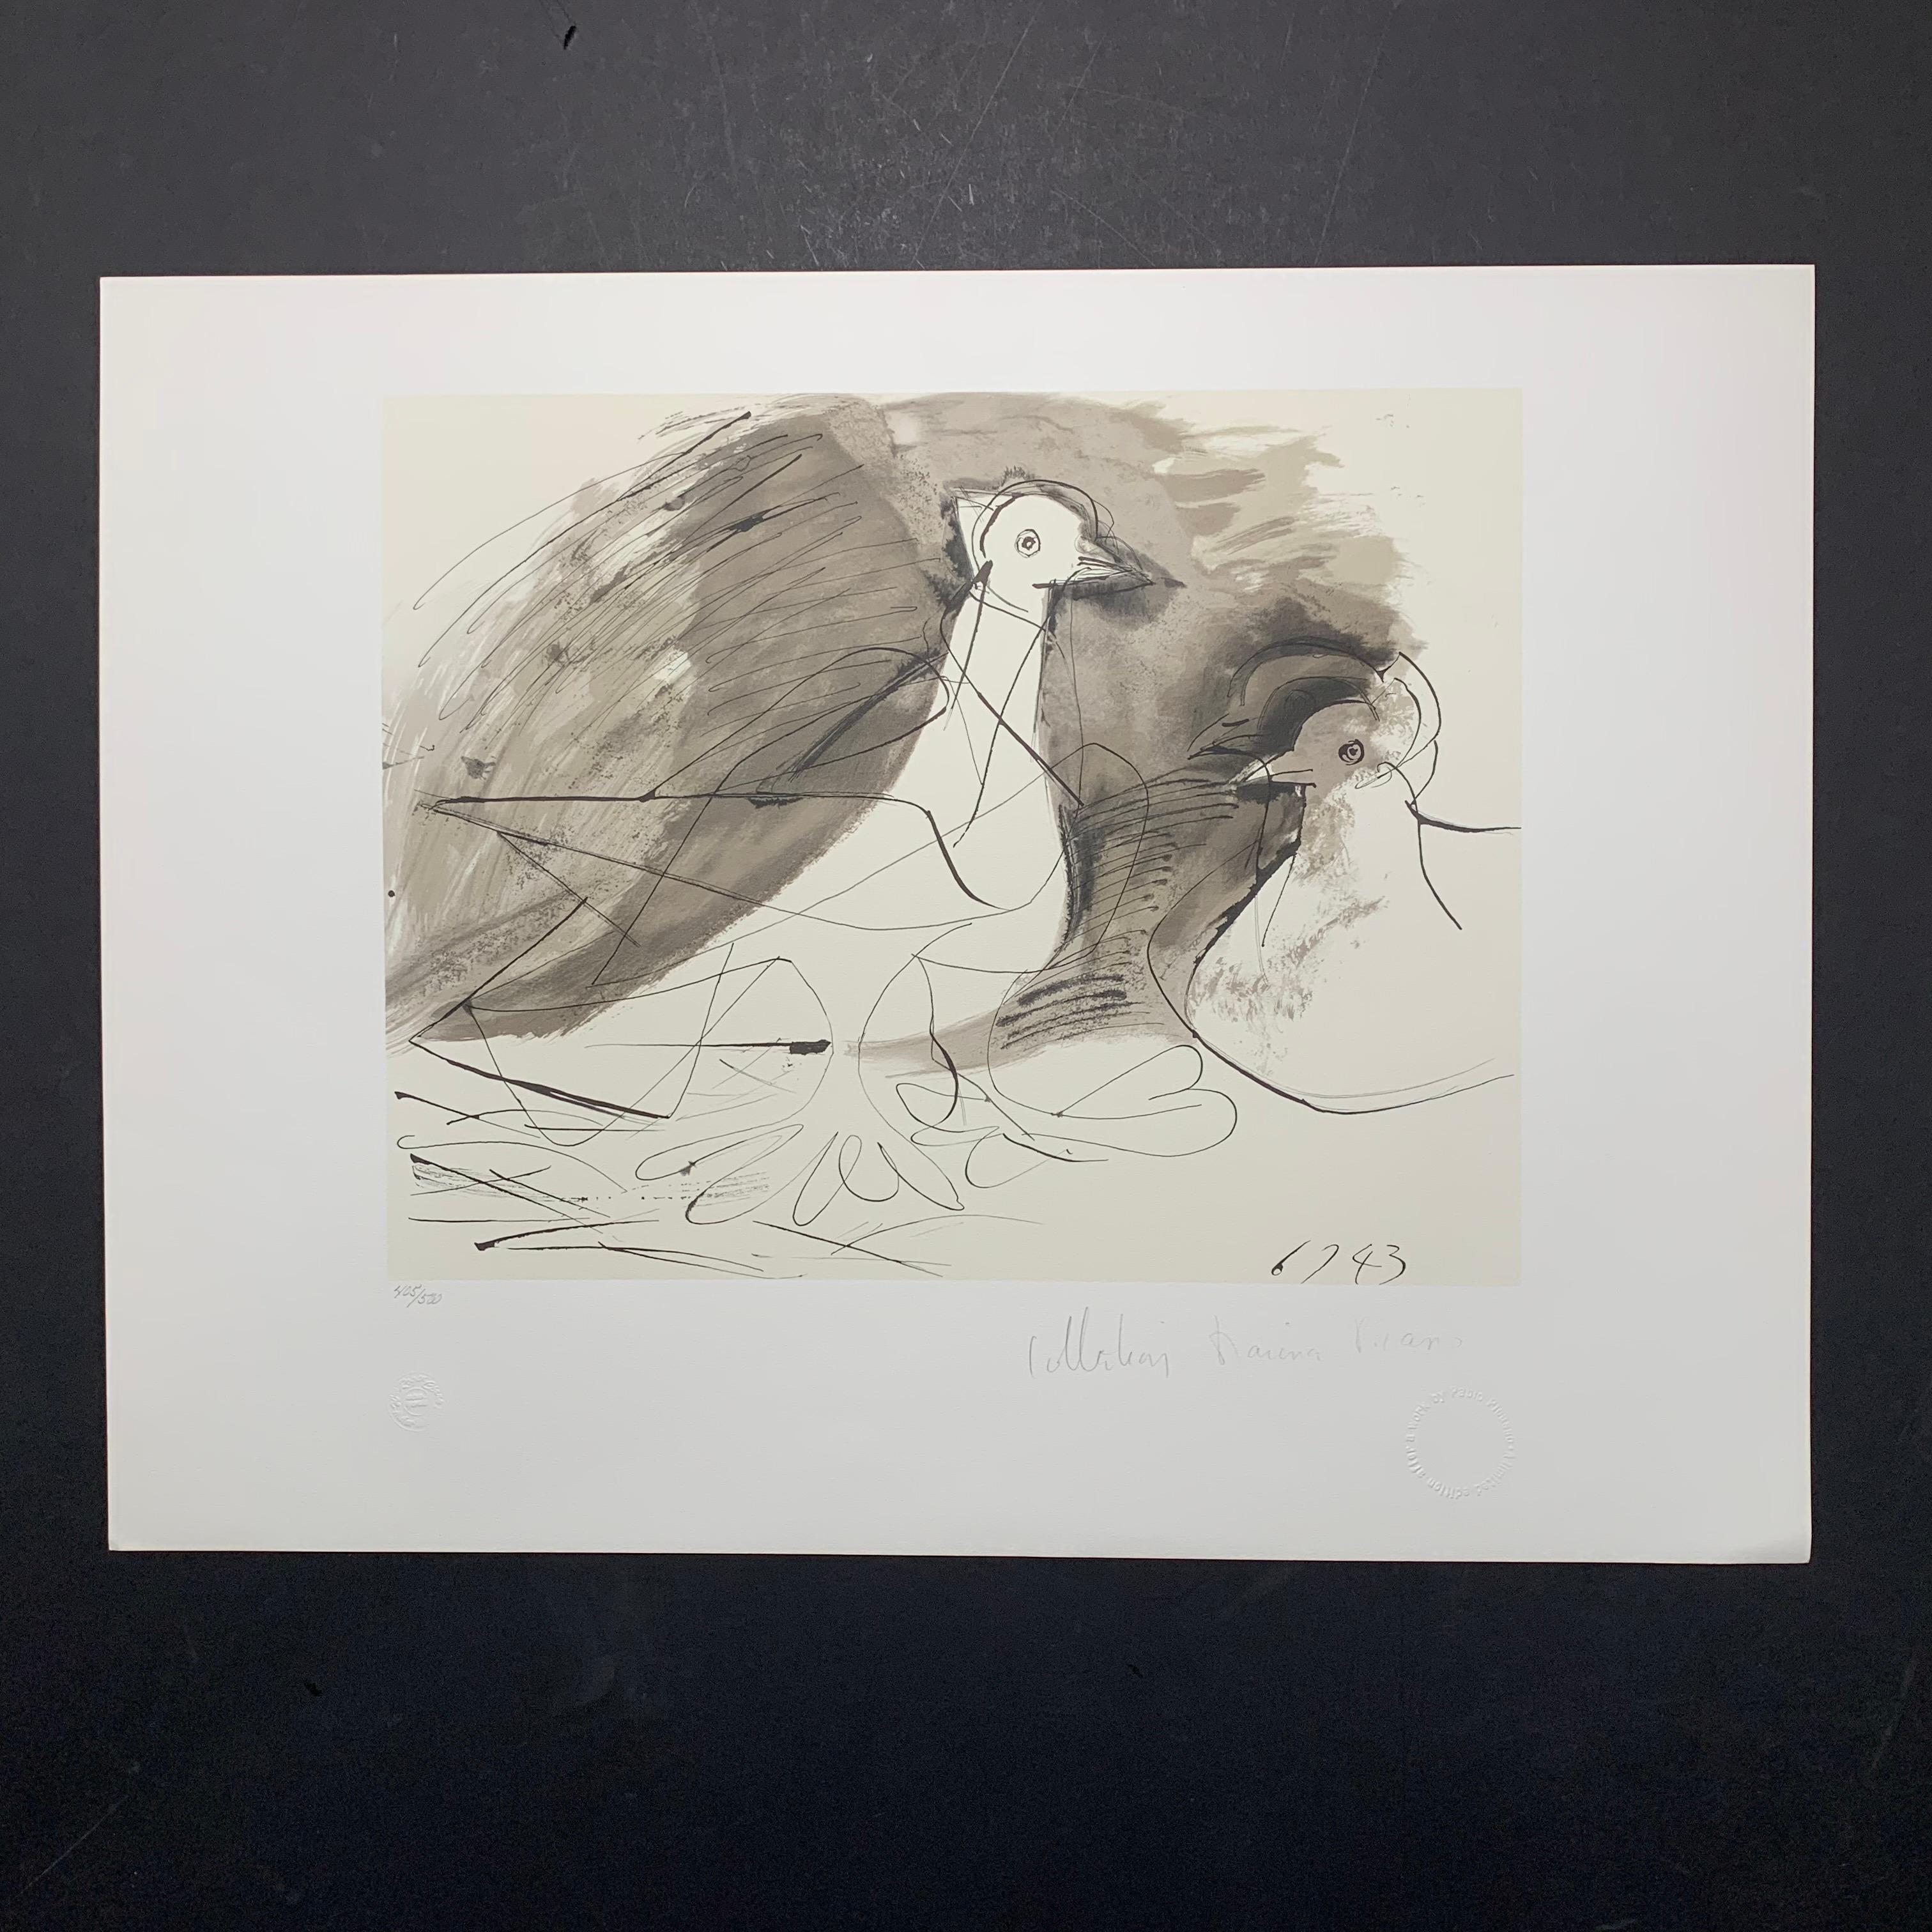 """Pablo Picasso's """"Pigeons"""" Limited Edition Lithograph"""